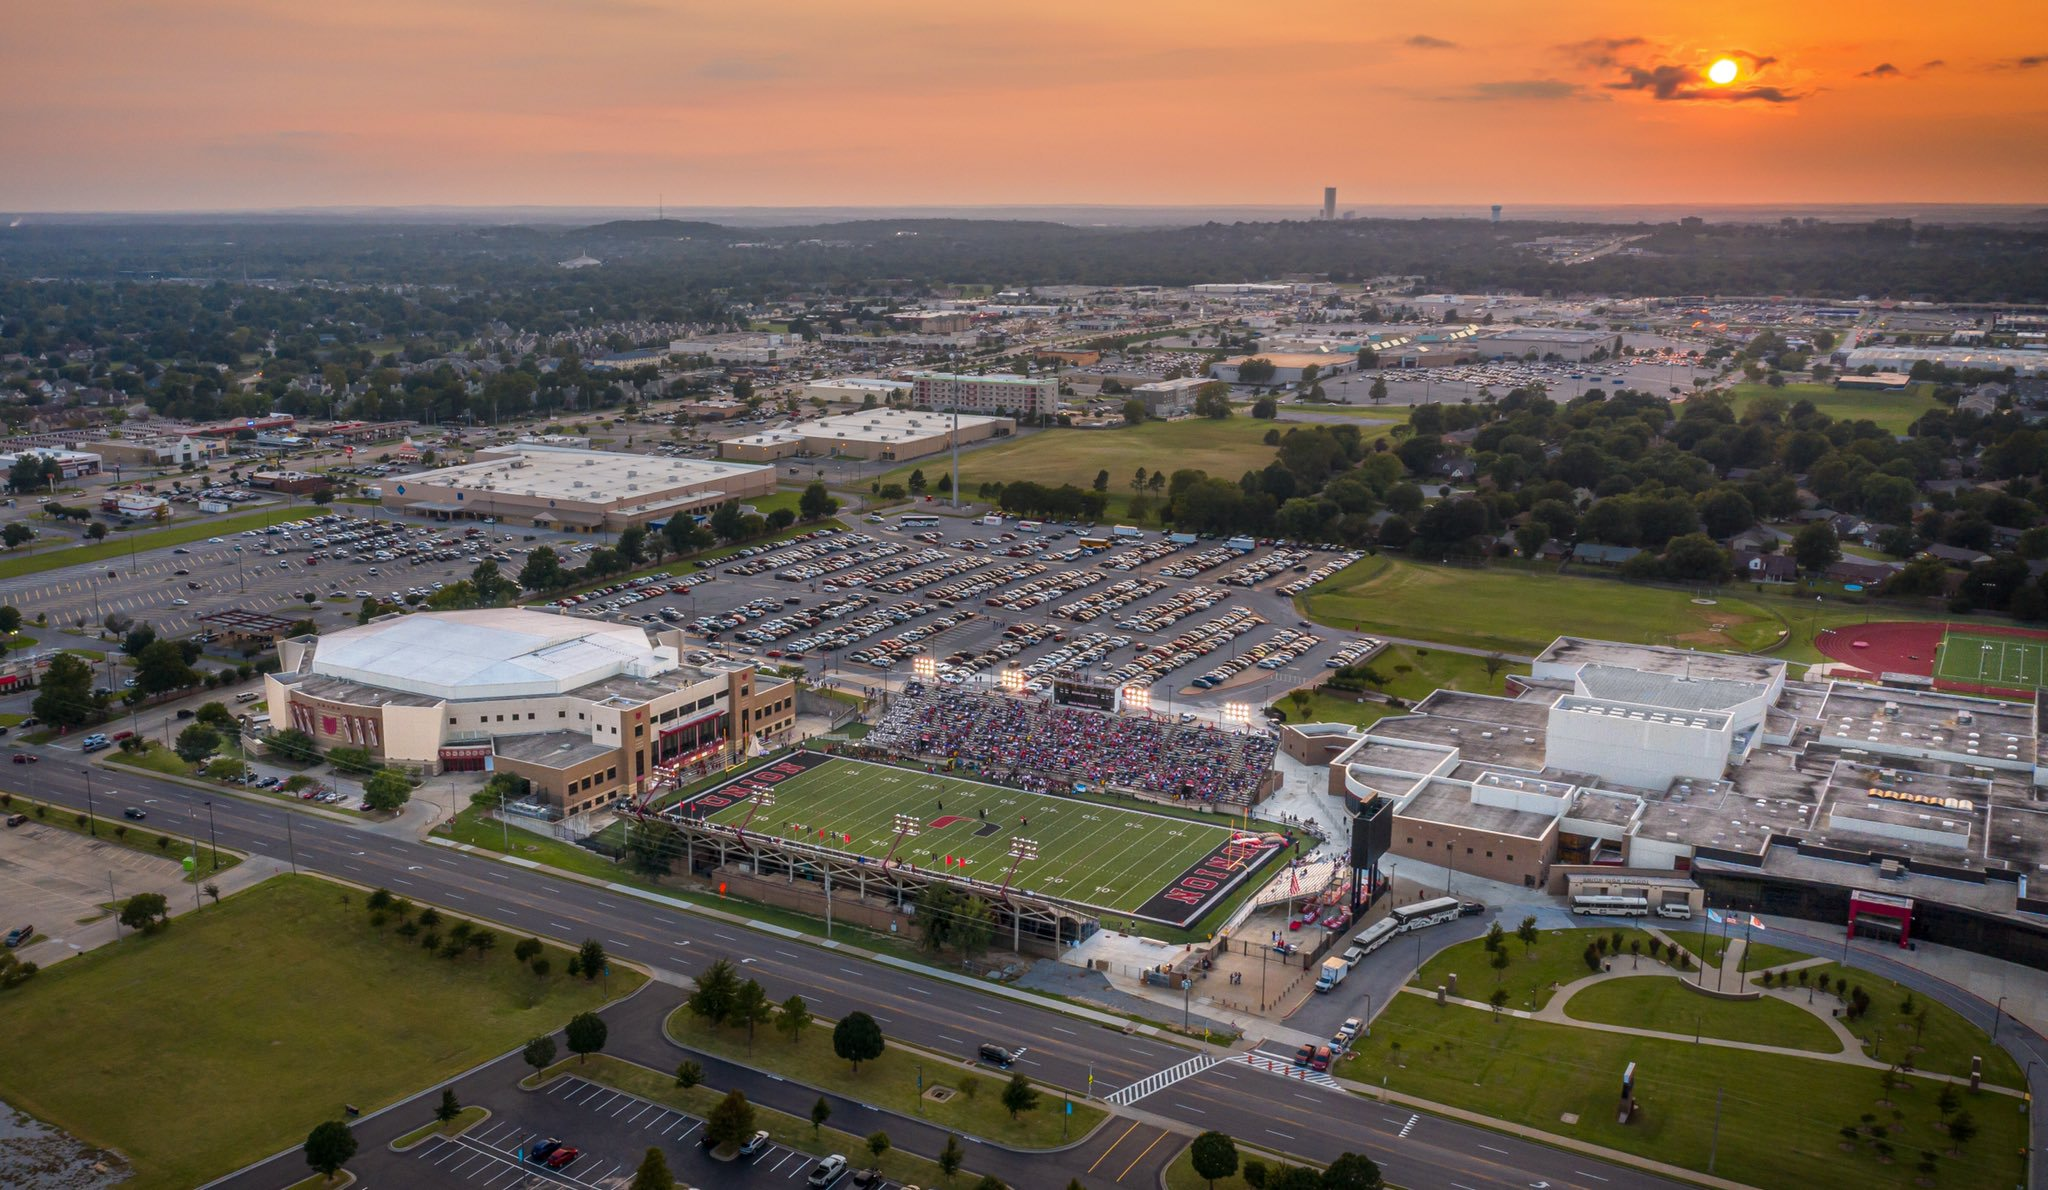 On Friday night, Union Public Schools celebrated 100 yearsas a district as well as the #uncommonvision it took 40+ years ago when building Union Tuttle Stadium.  At the conclusion of the 2019 season, construction will begin on the new stadium, set to re-open in 2021.